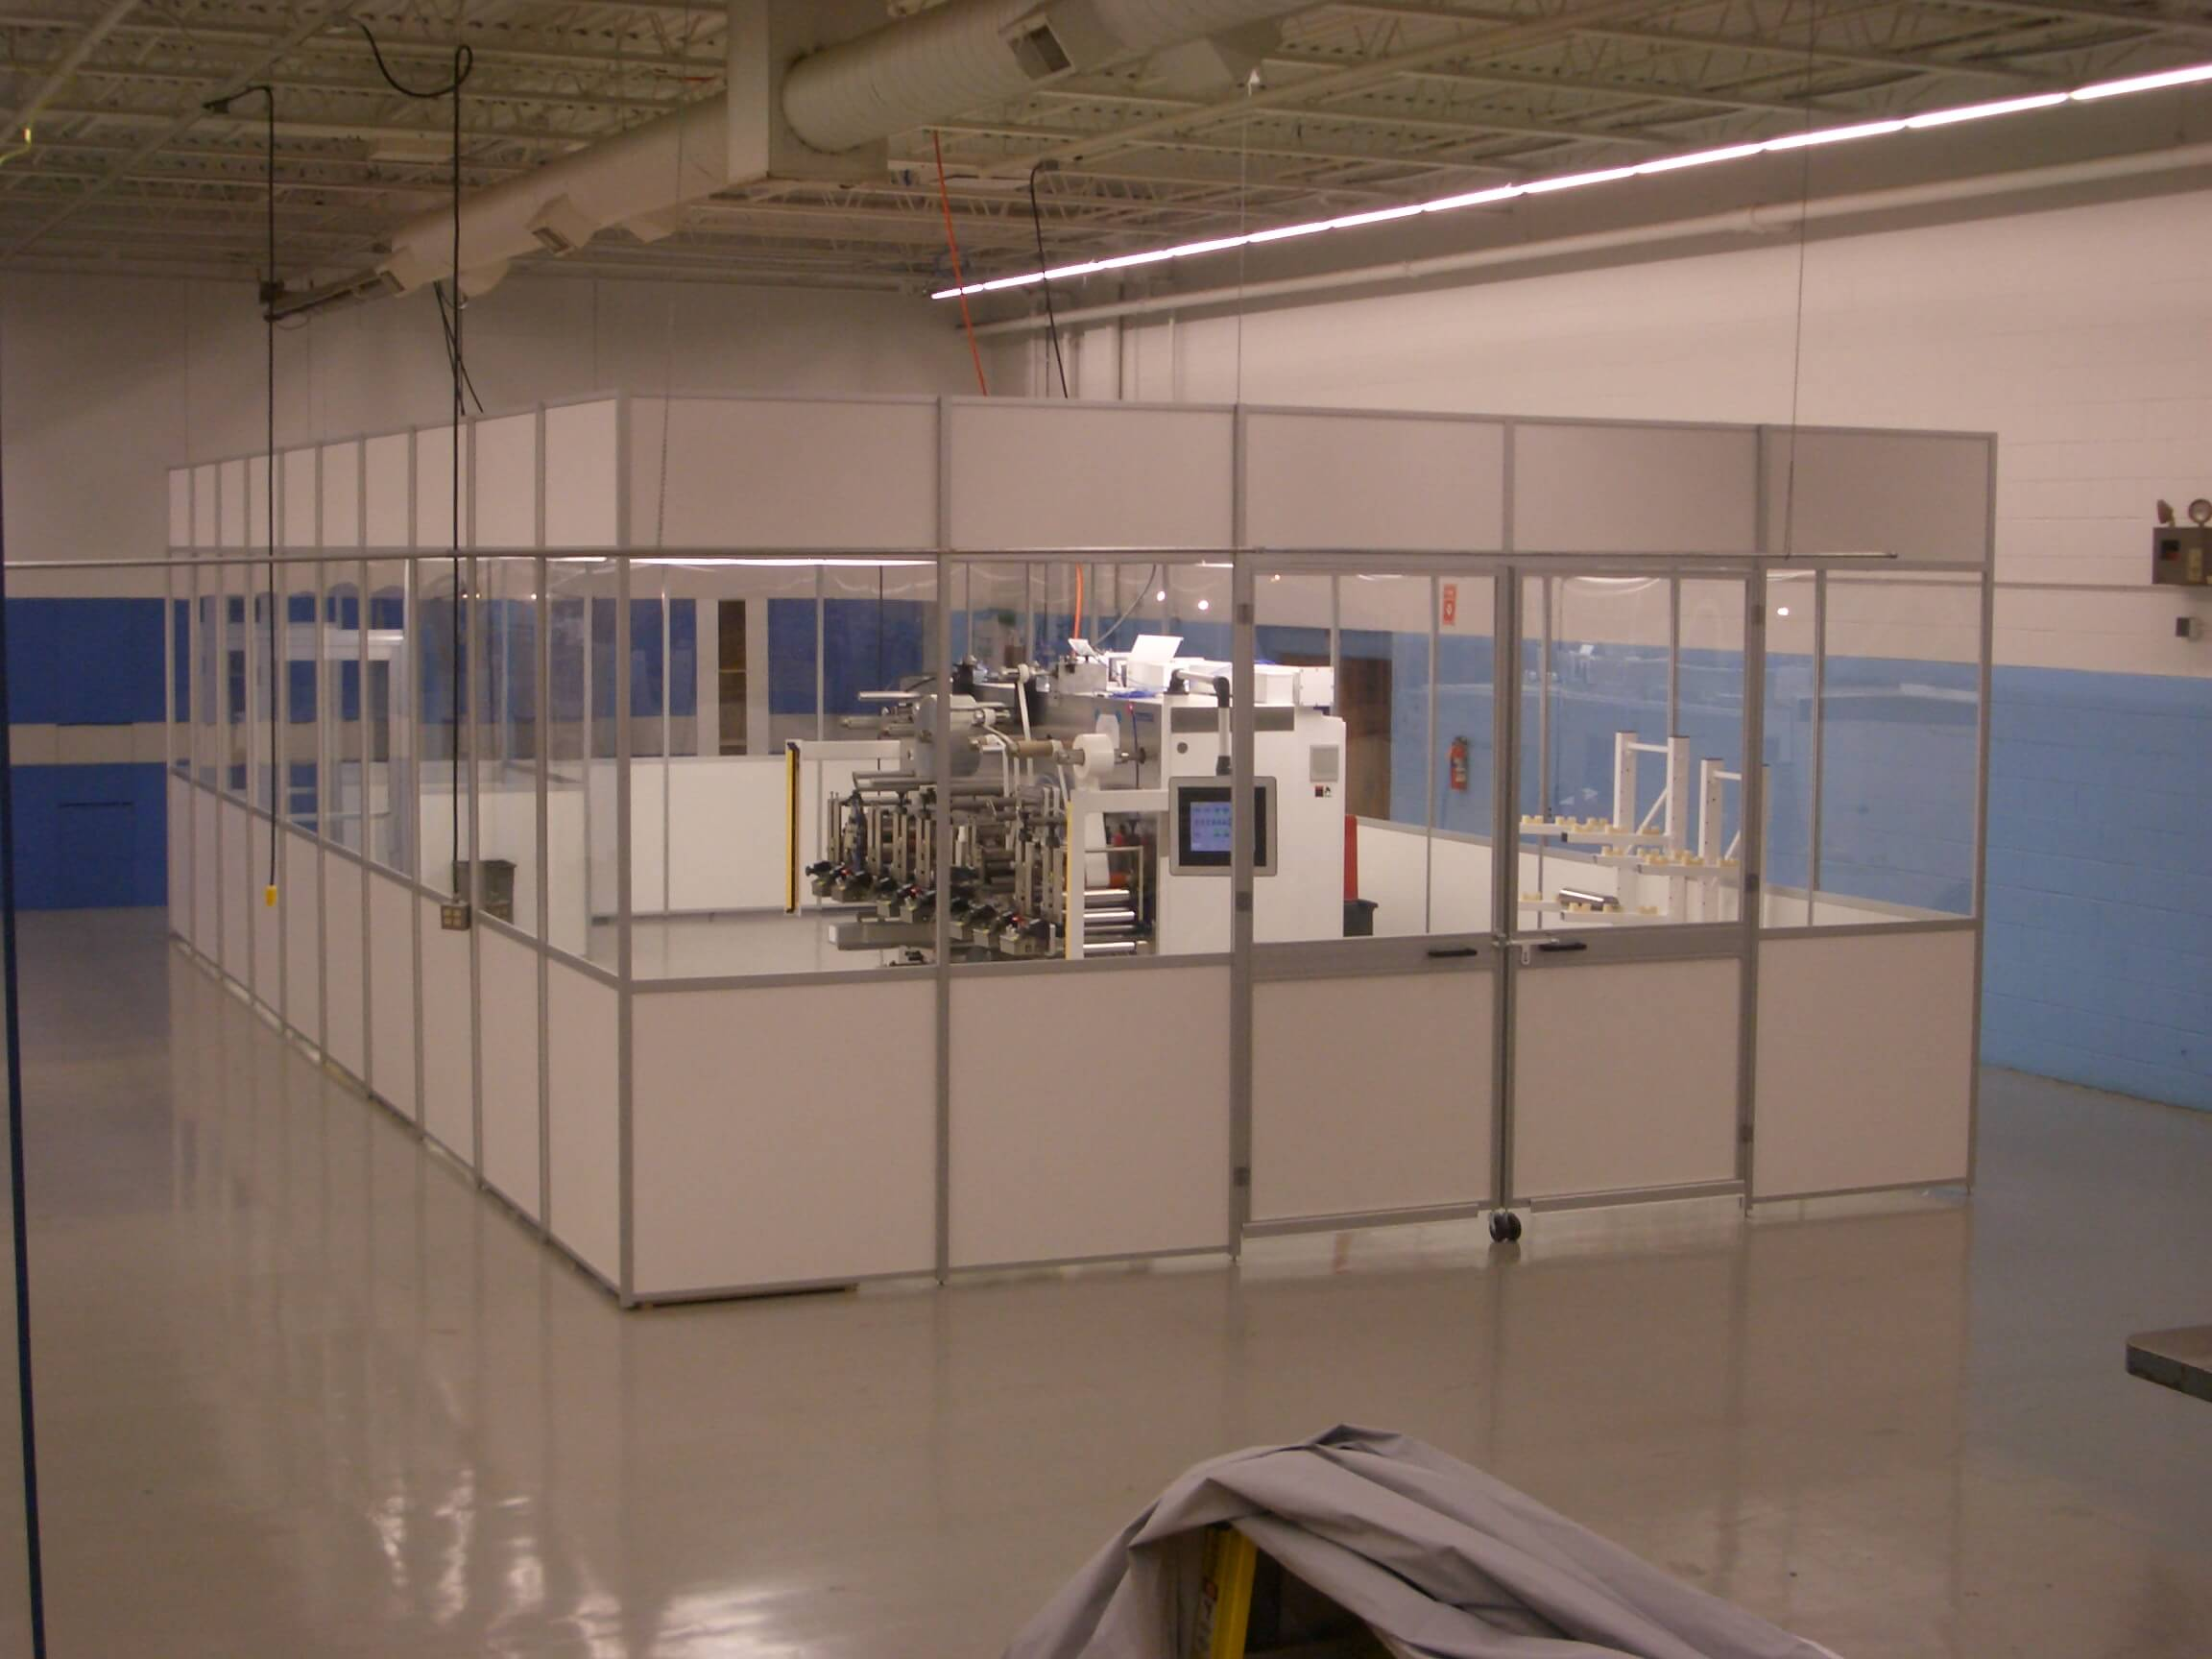 When is a Modular Cleanroom the Best Option? | Modular Cleanrooms by ...